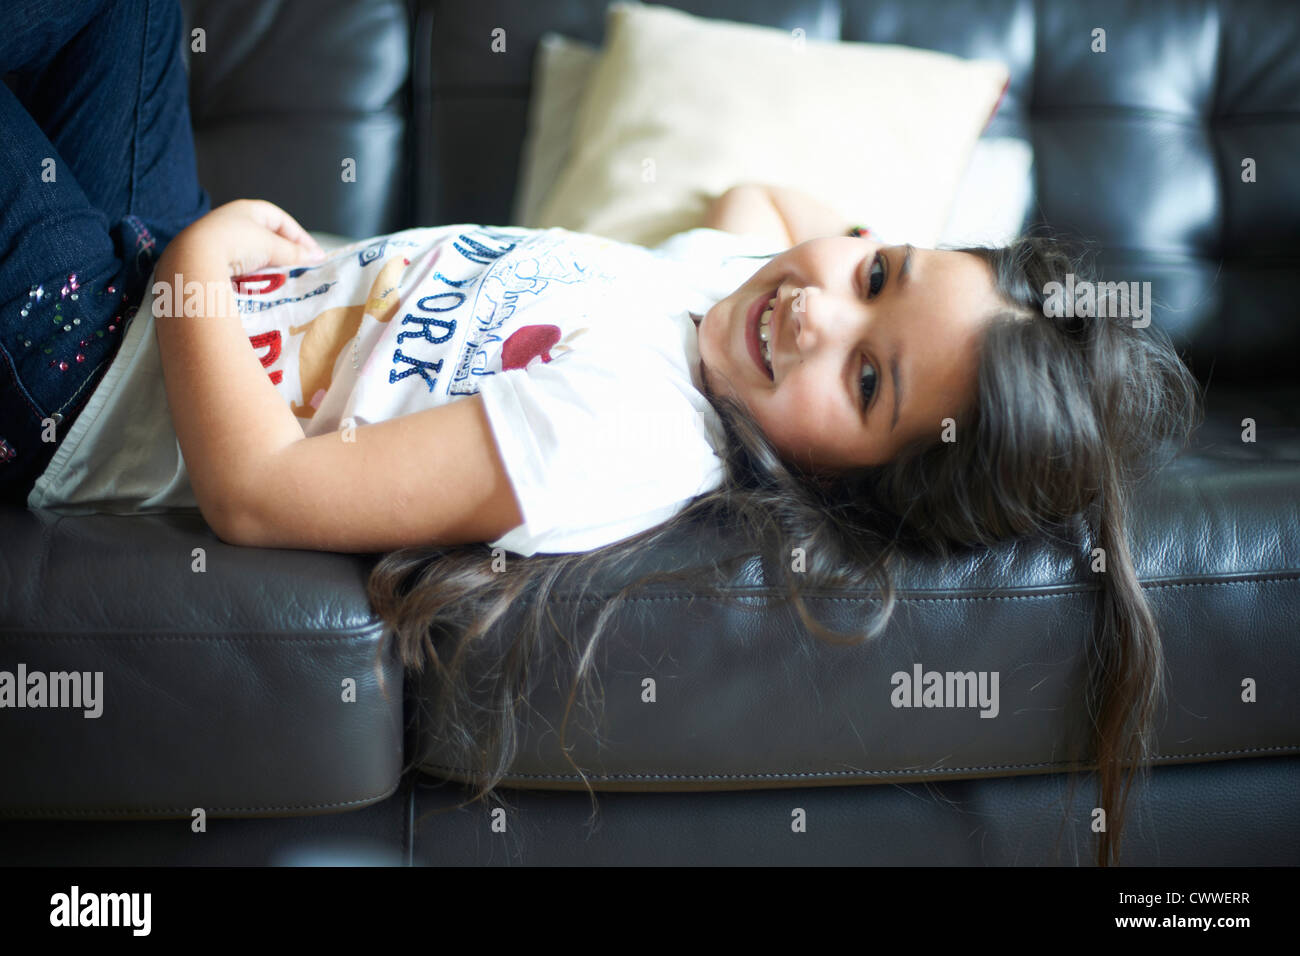 Smiling girl relaxing on sofa - Stock Image